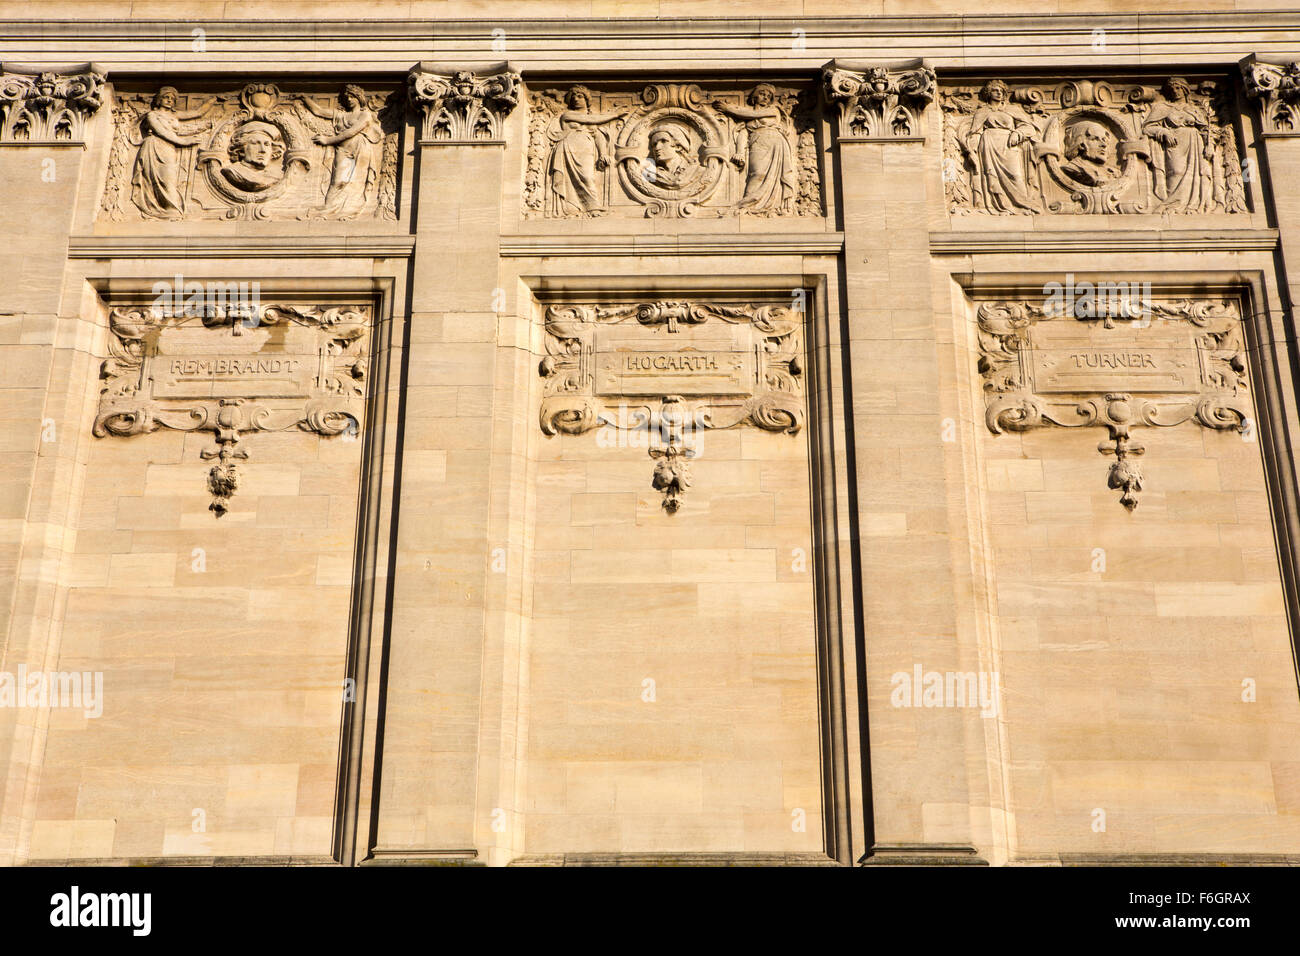 Carved Stone Wall Panels Stock Photos & Carved Stone Wall Panels ...